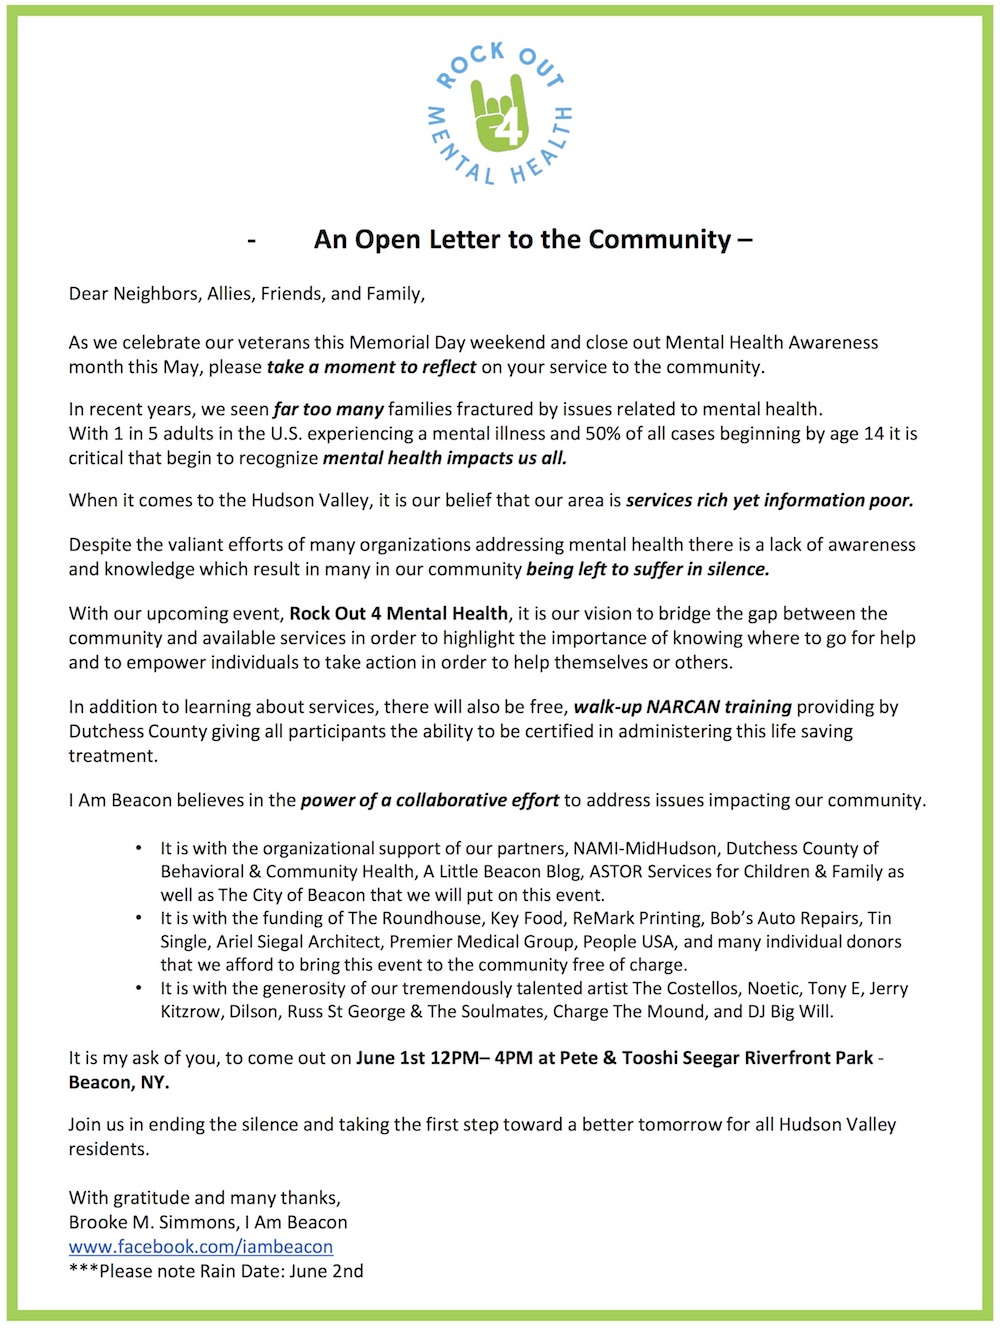 Rock Out 4 Mental Health-Open Letter.jpg